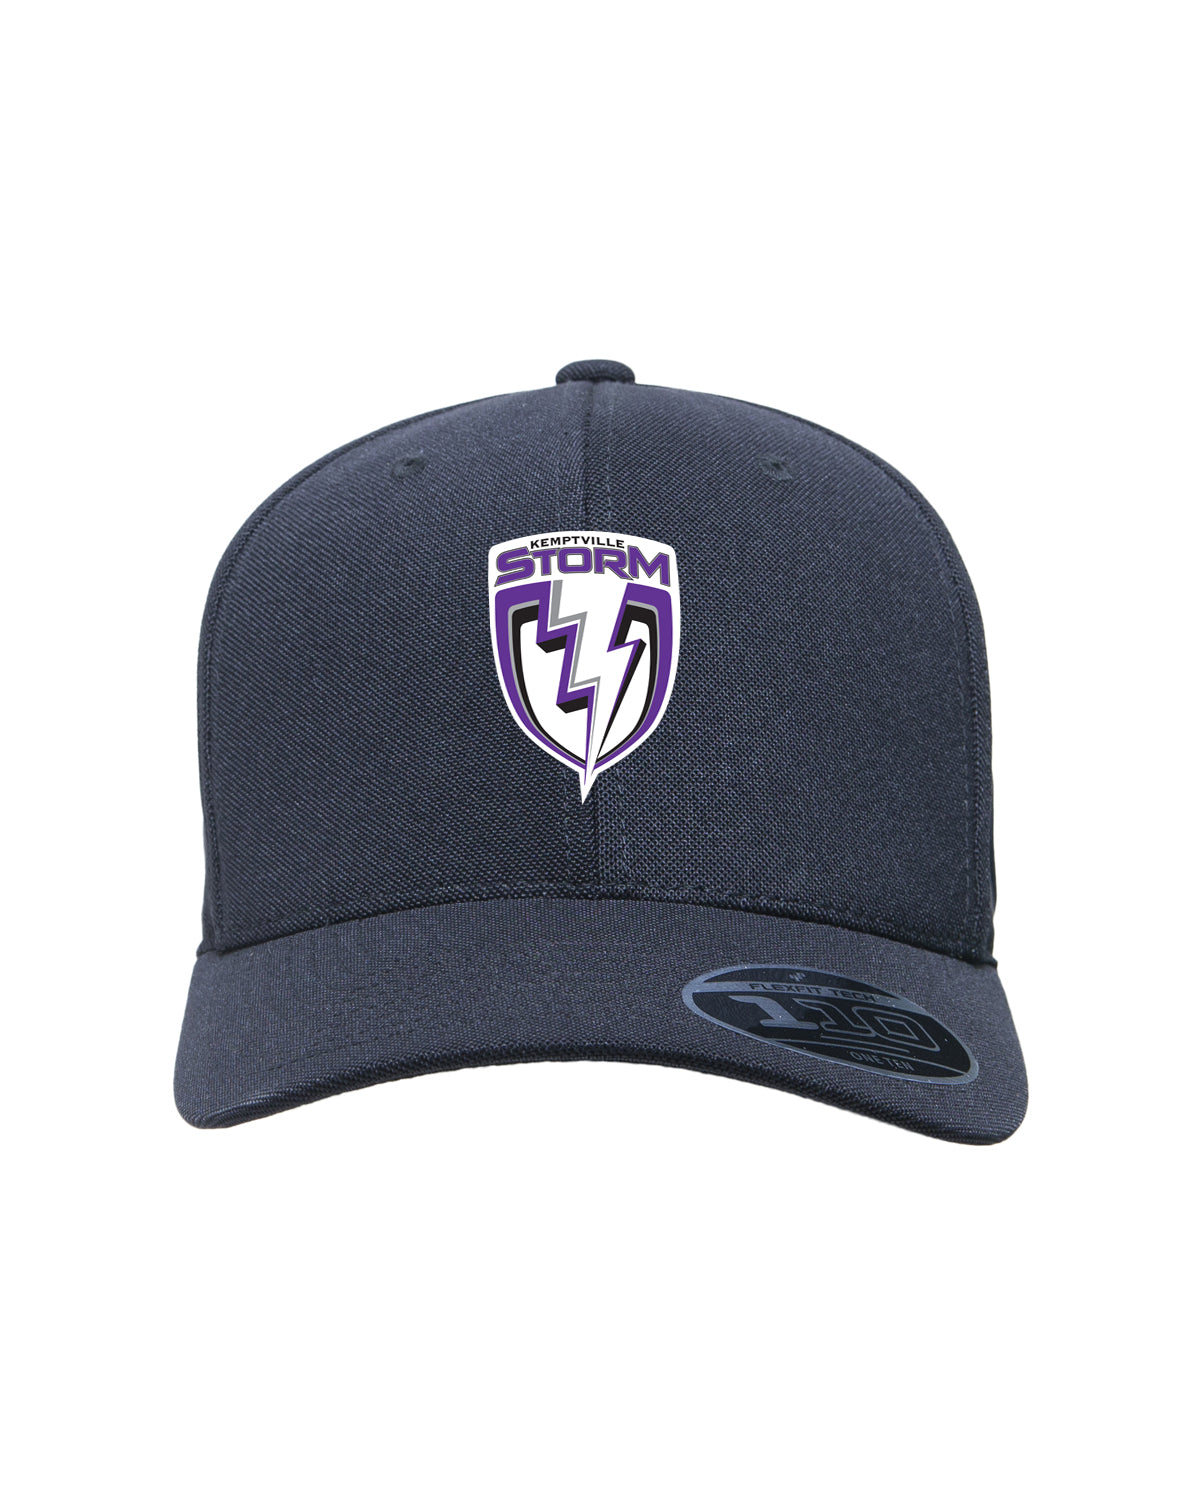 Kemptville Storm Adjustable Hat